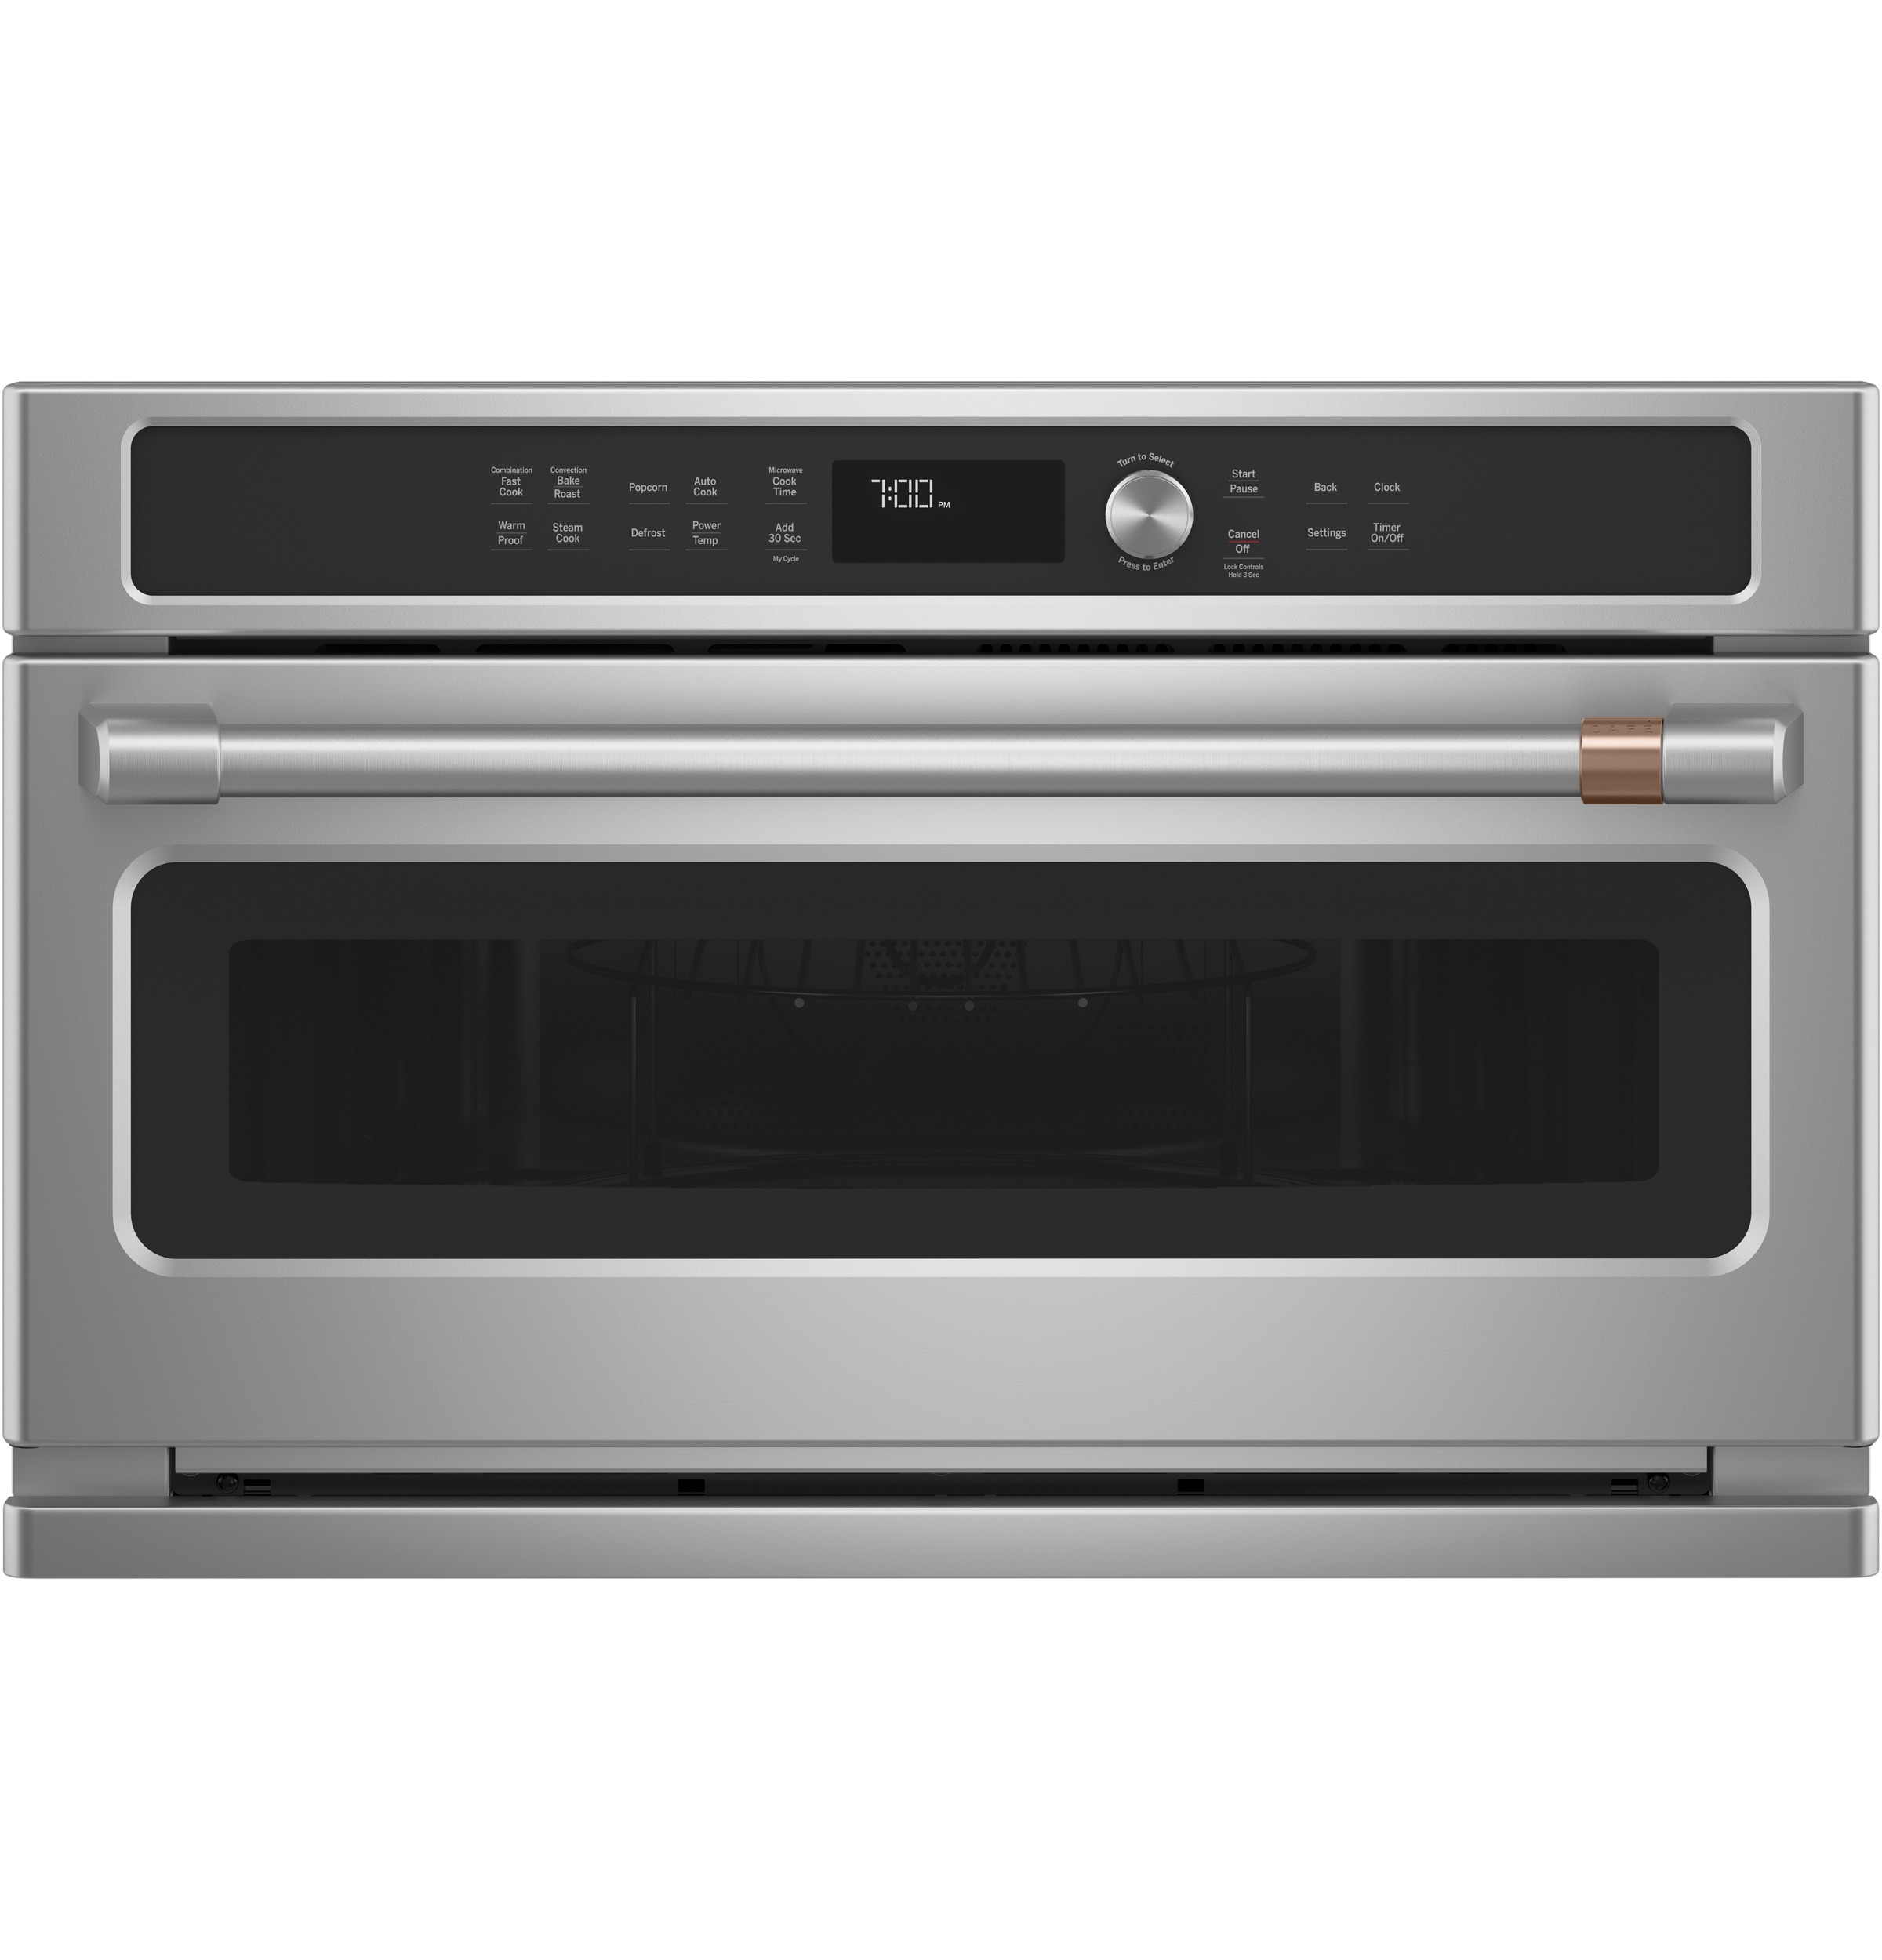 Café™ Built-In Microwave/Convection Oven